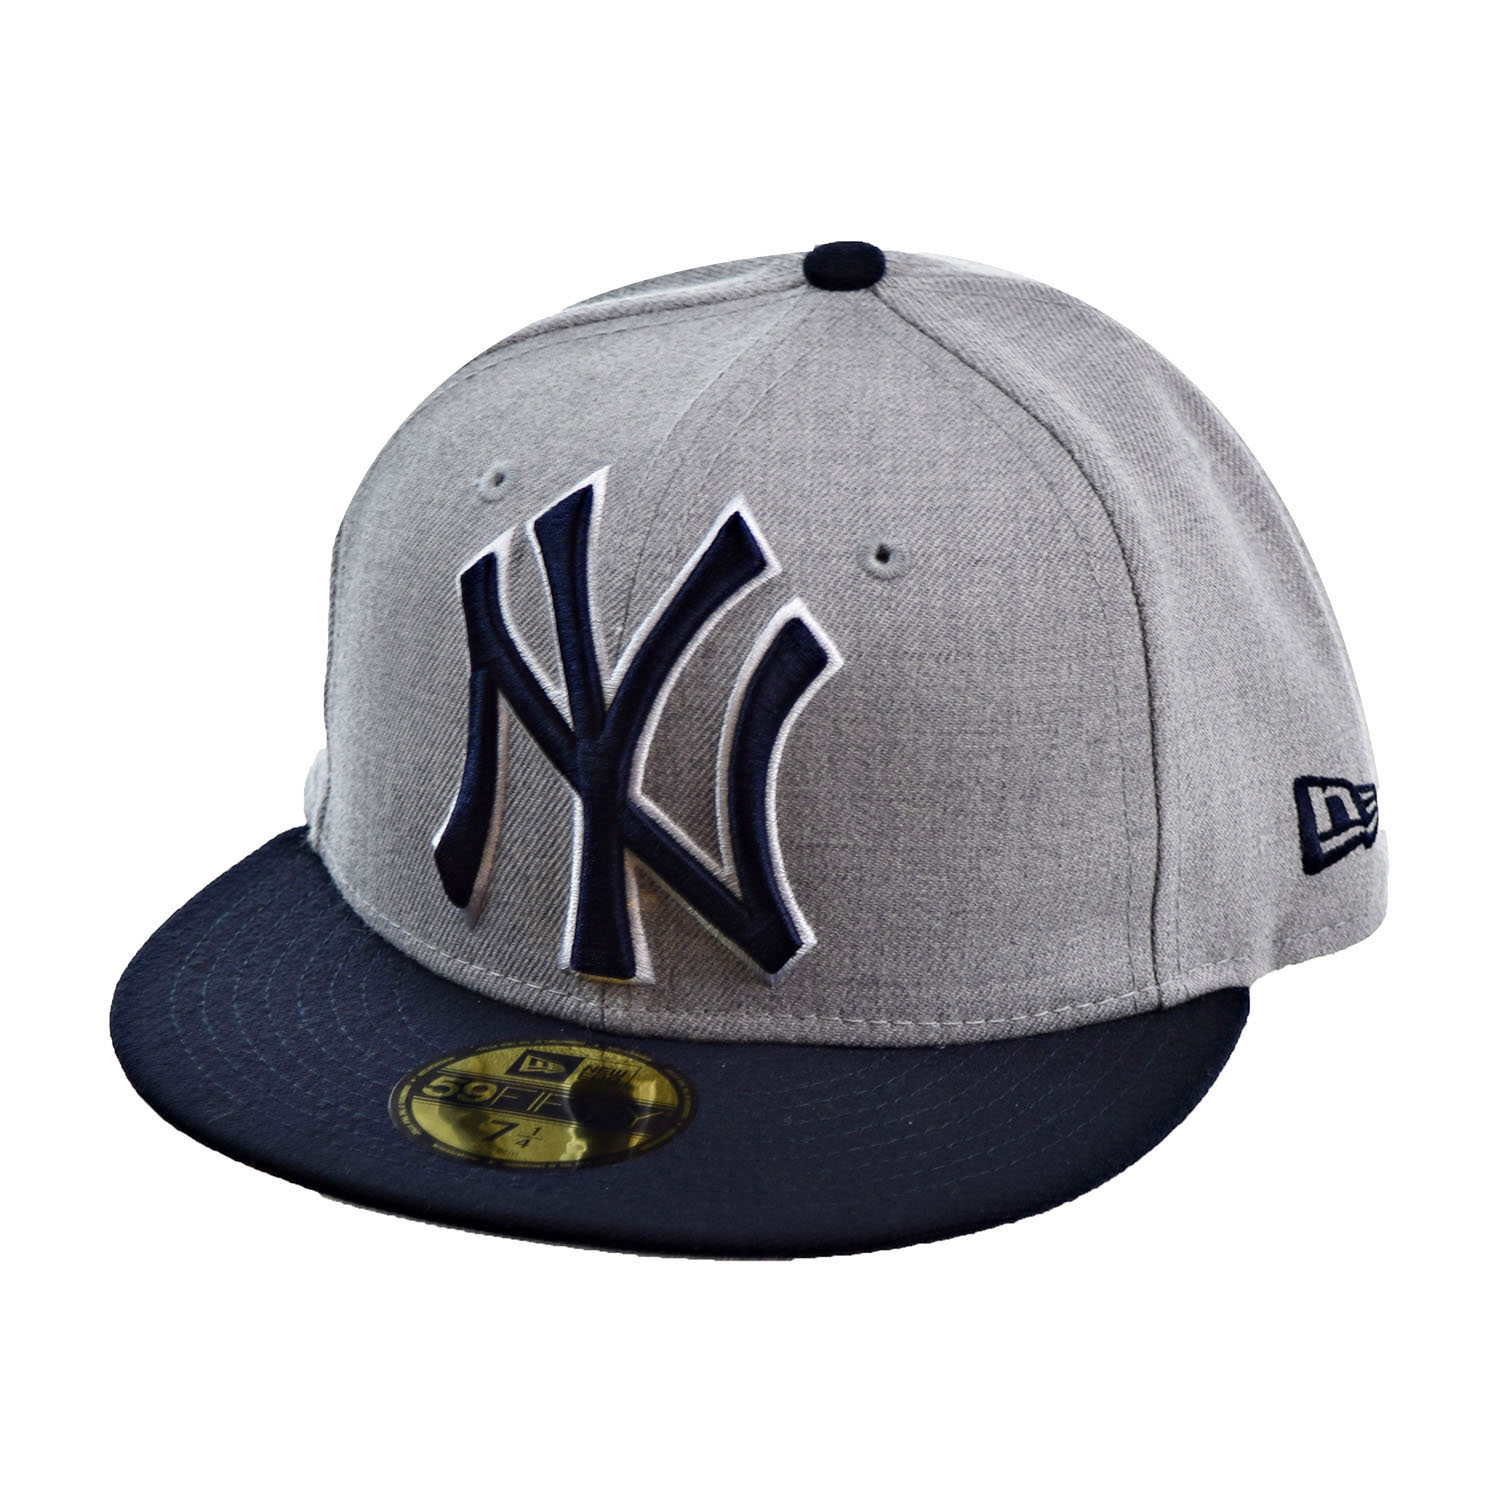 43dfaa349d2 ... discount code for new era new york yankees heather grand fitted 59fifty  mens fitted hat cap